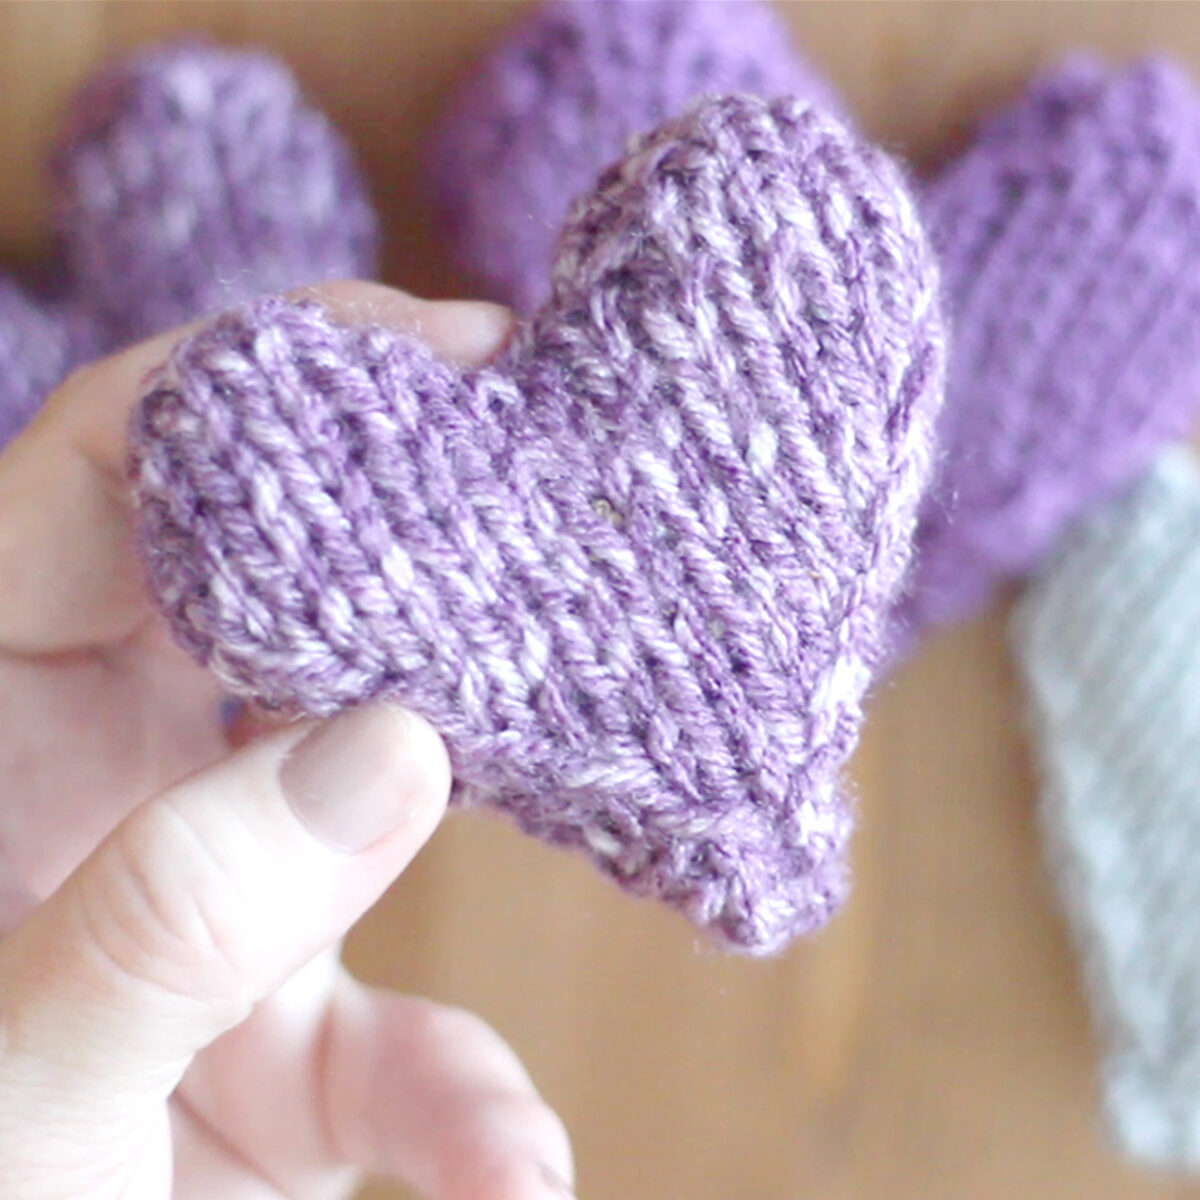 puffy stuffed knitted heart with hand holding